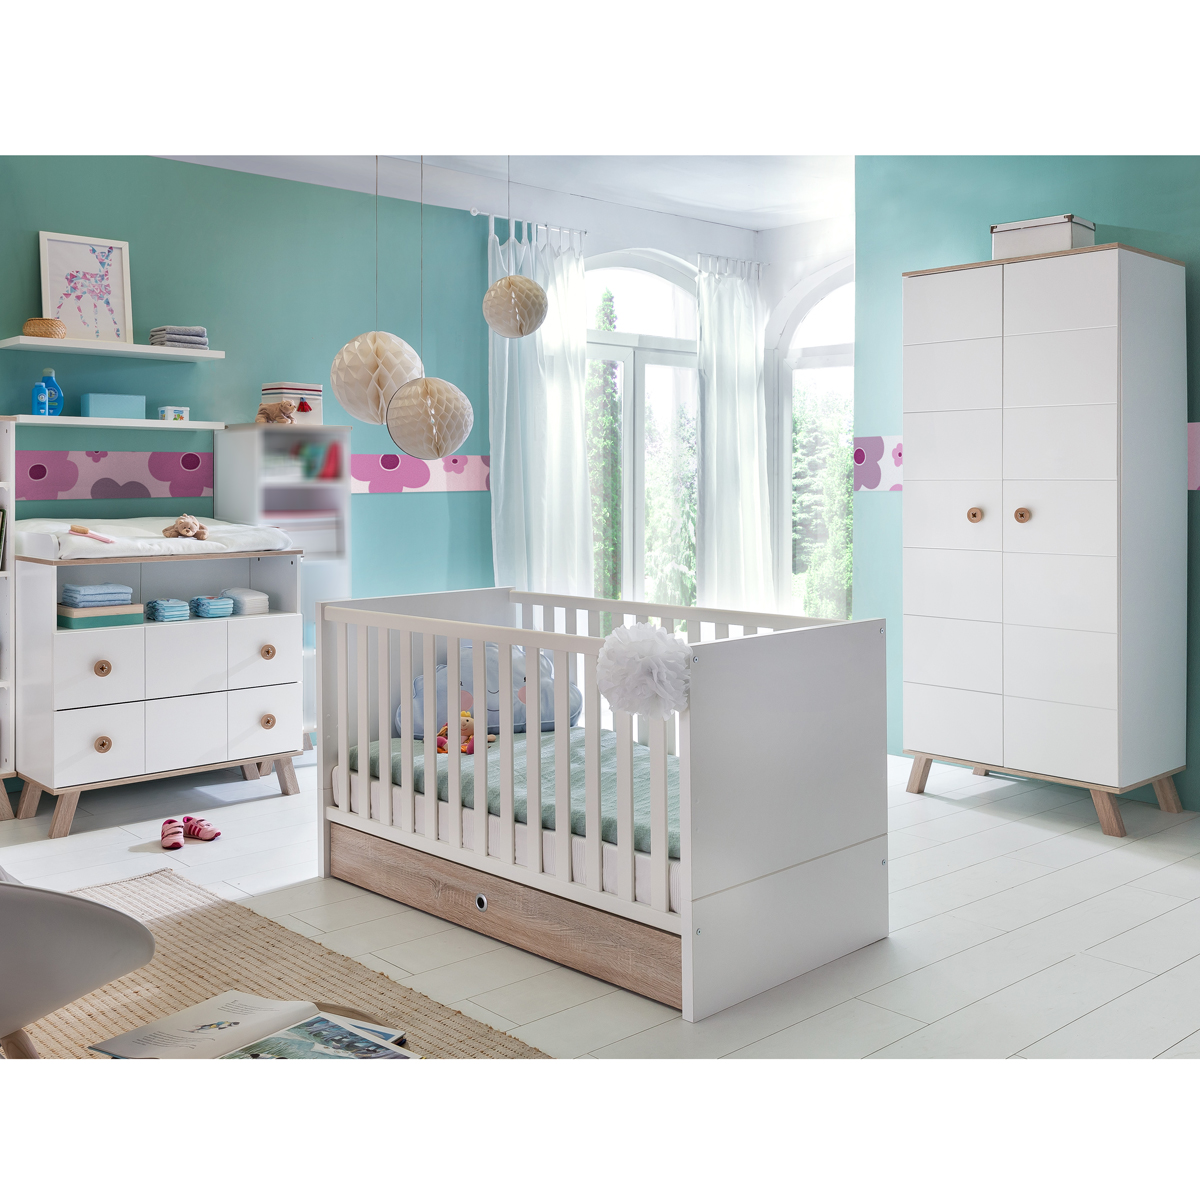 babyzimmer set billu kinderzimmer baby erstausstattung wei eiche komplettset ebay. Black Bedroom Furniture Sets. Home Design Ideas